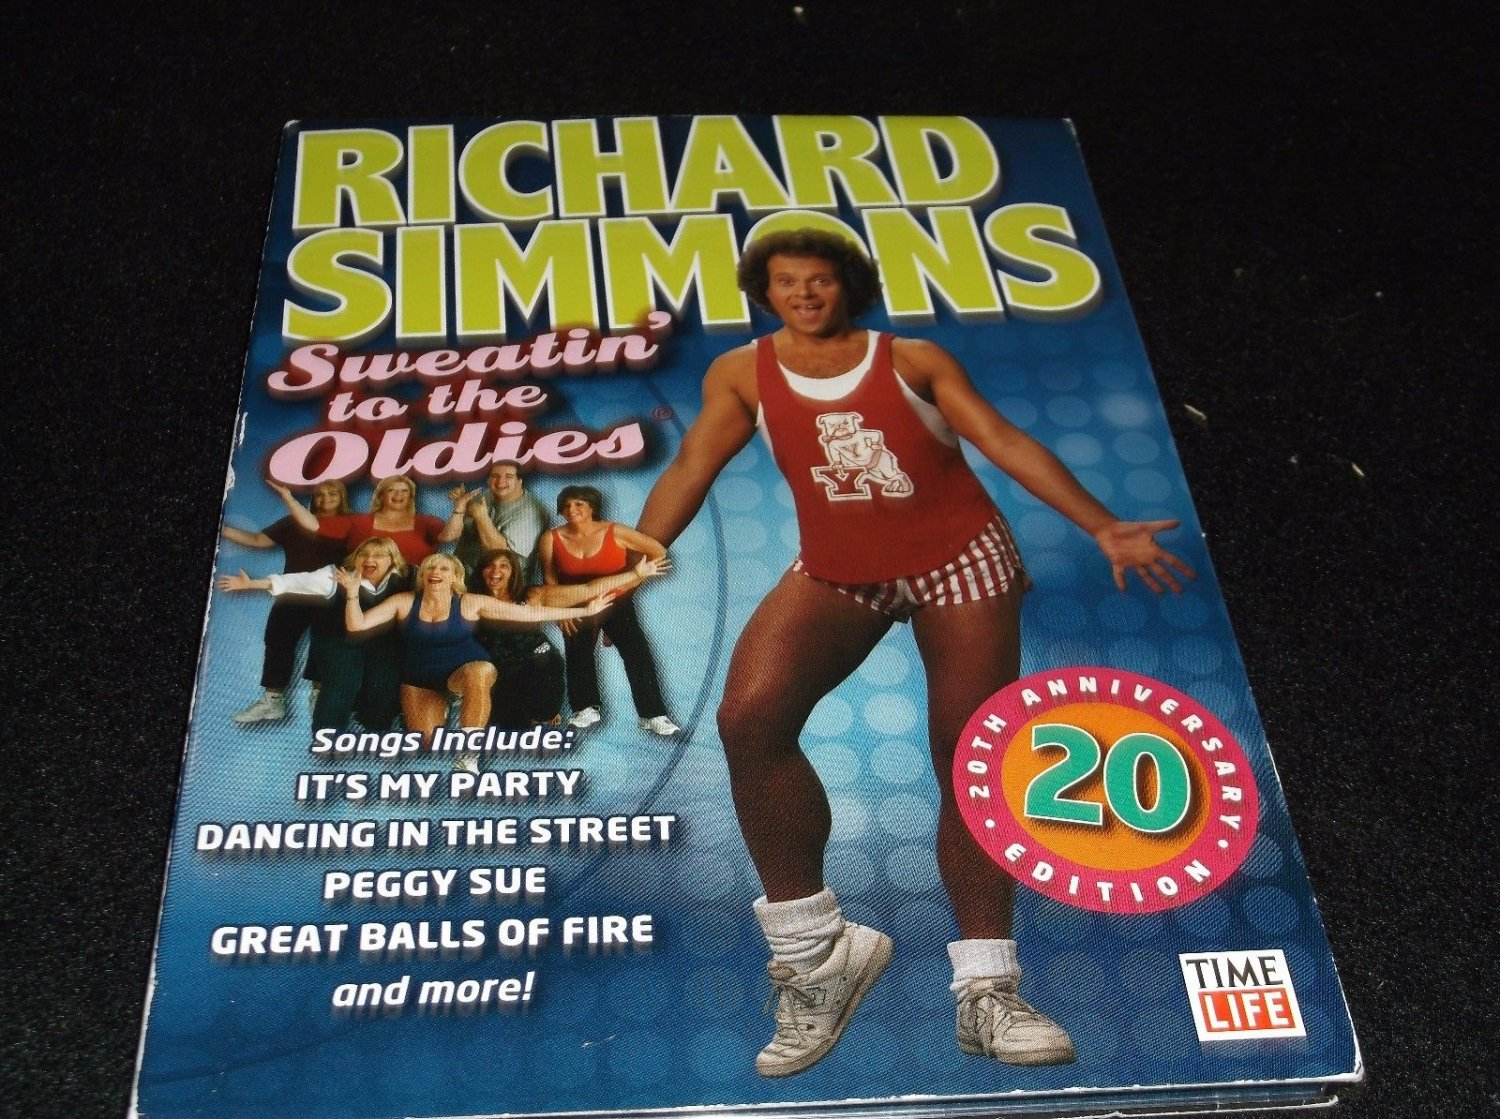 Richard Simmons Sweatin to the Oldies 20th Anniversary 90 Min DVD Time Life 2007